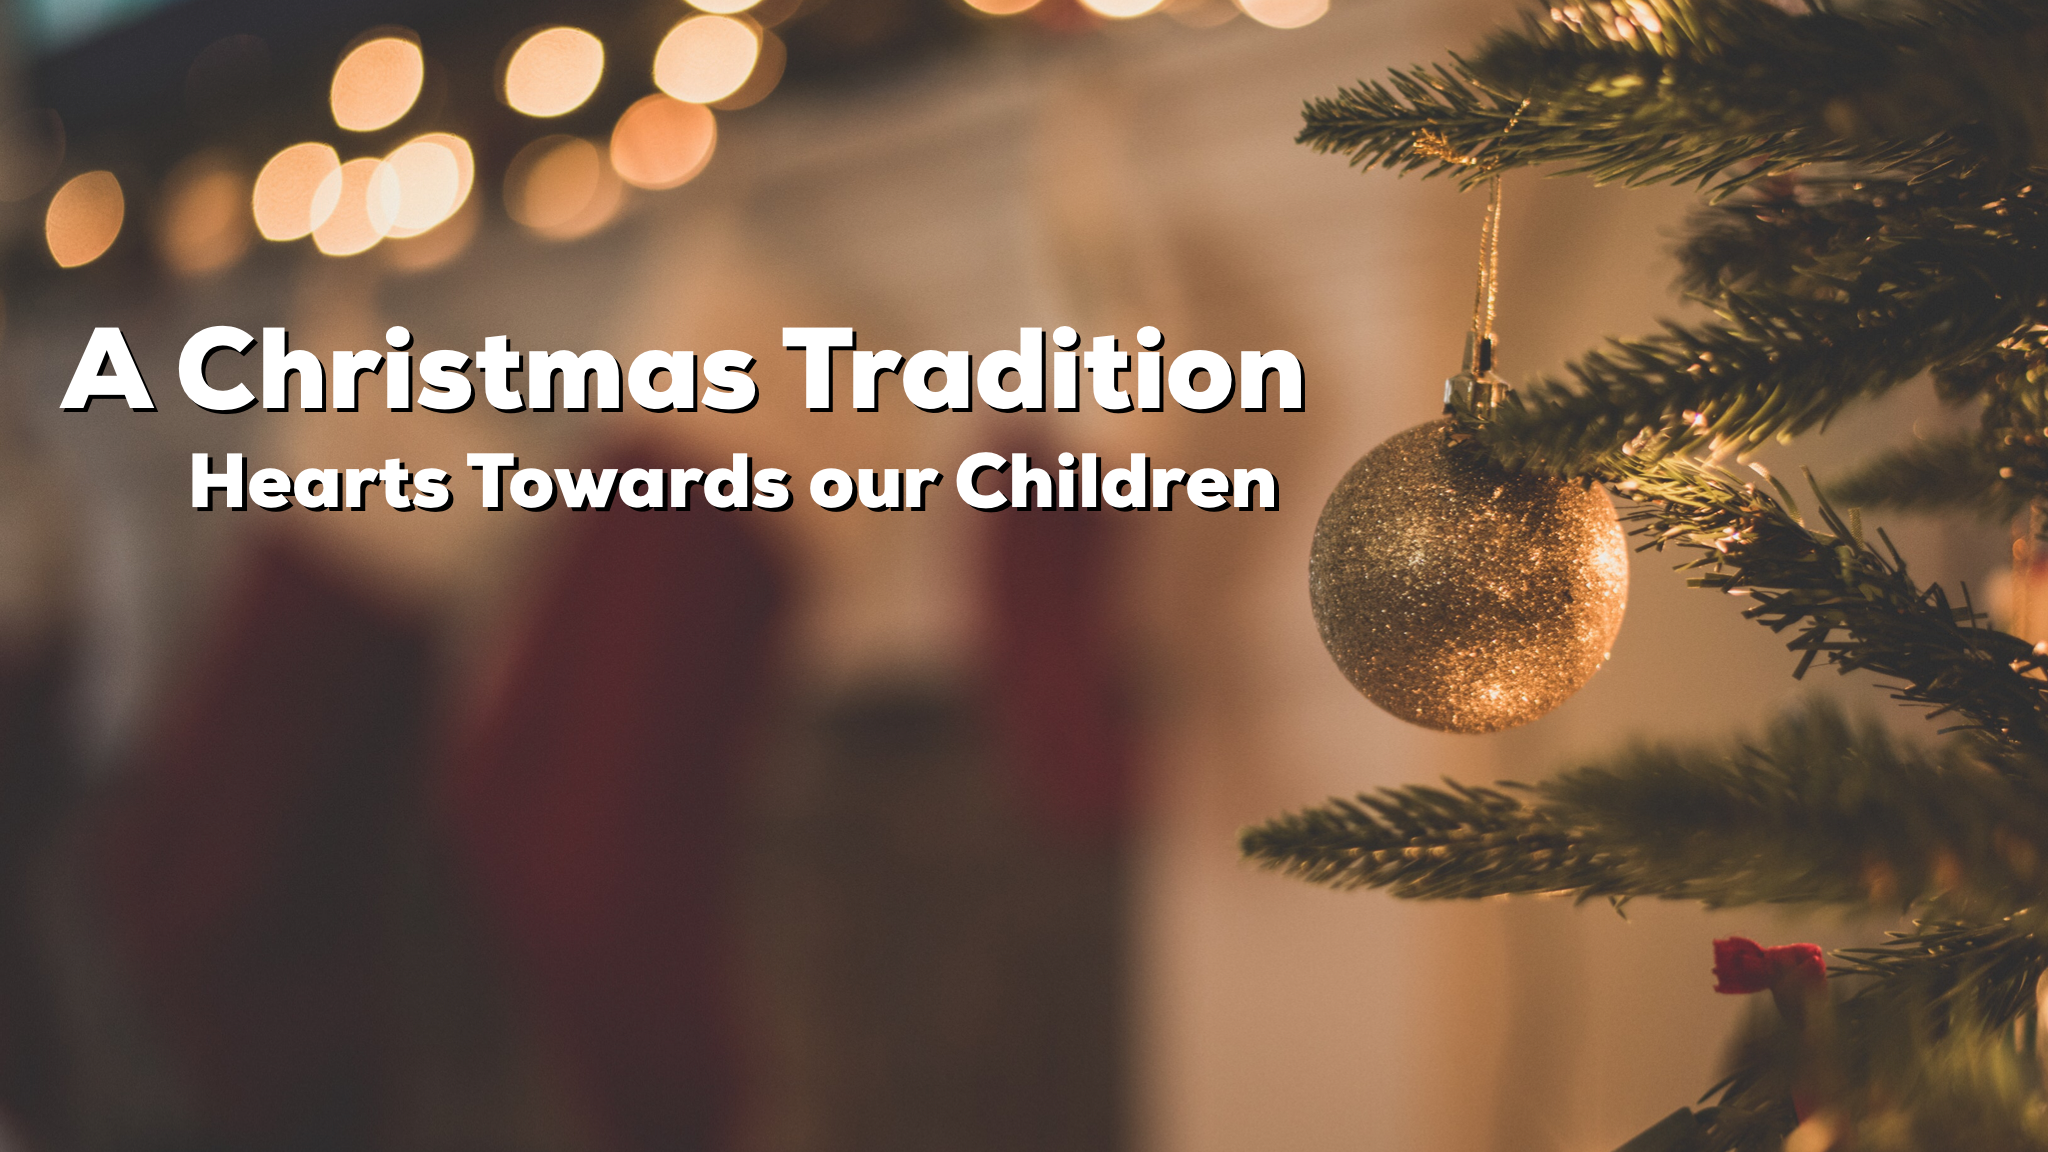 Reid shares a family tradition to connect with your kids and point them to Jesus around the holidays.